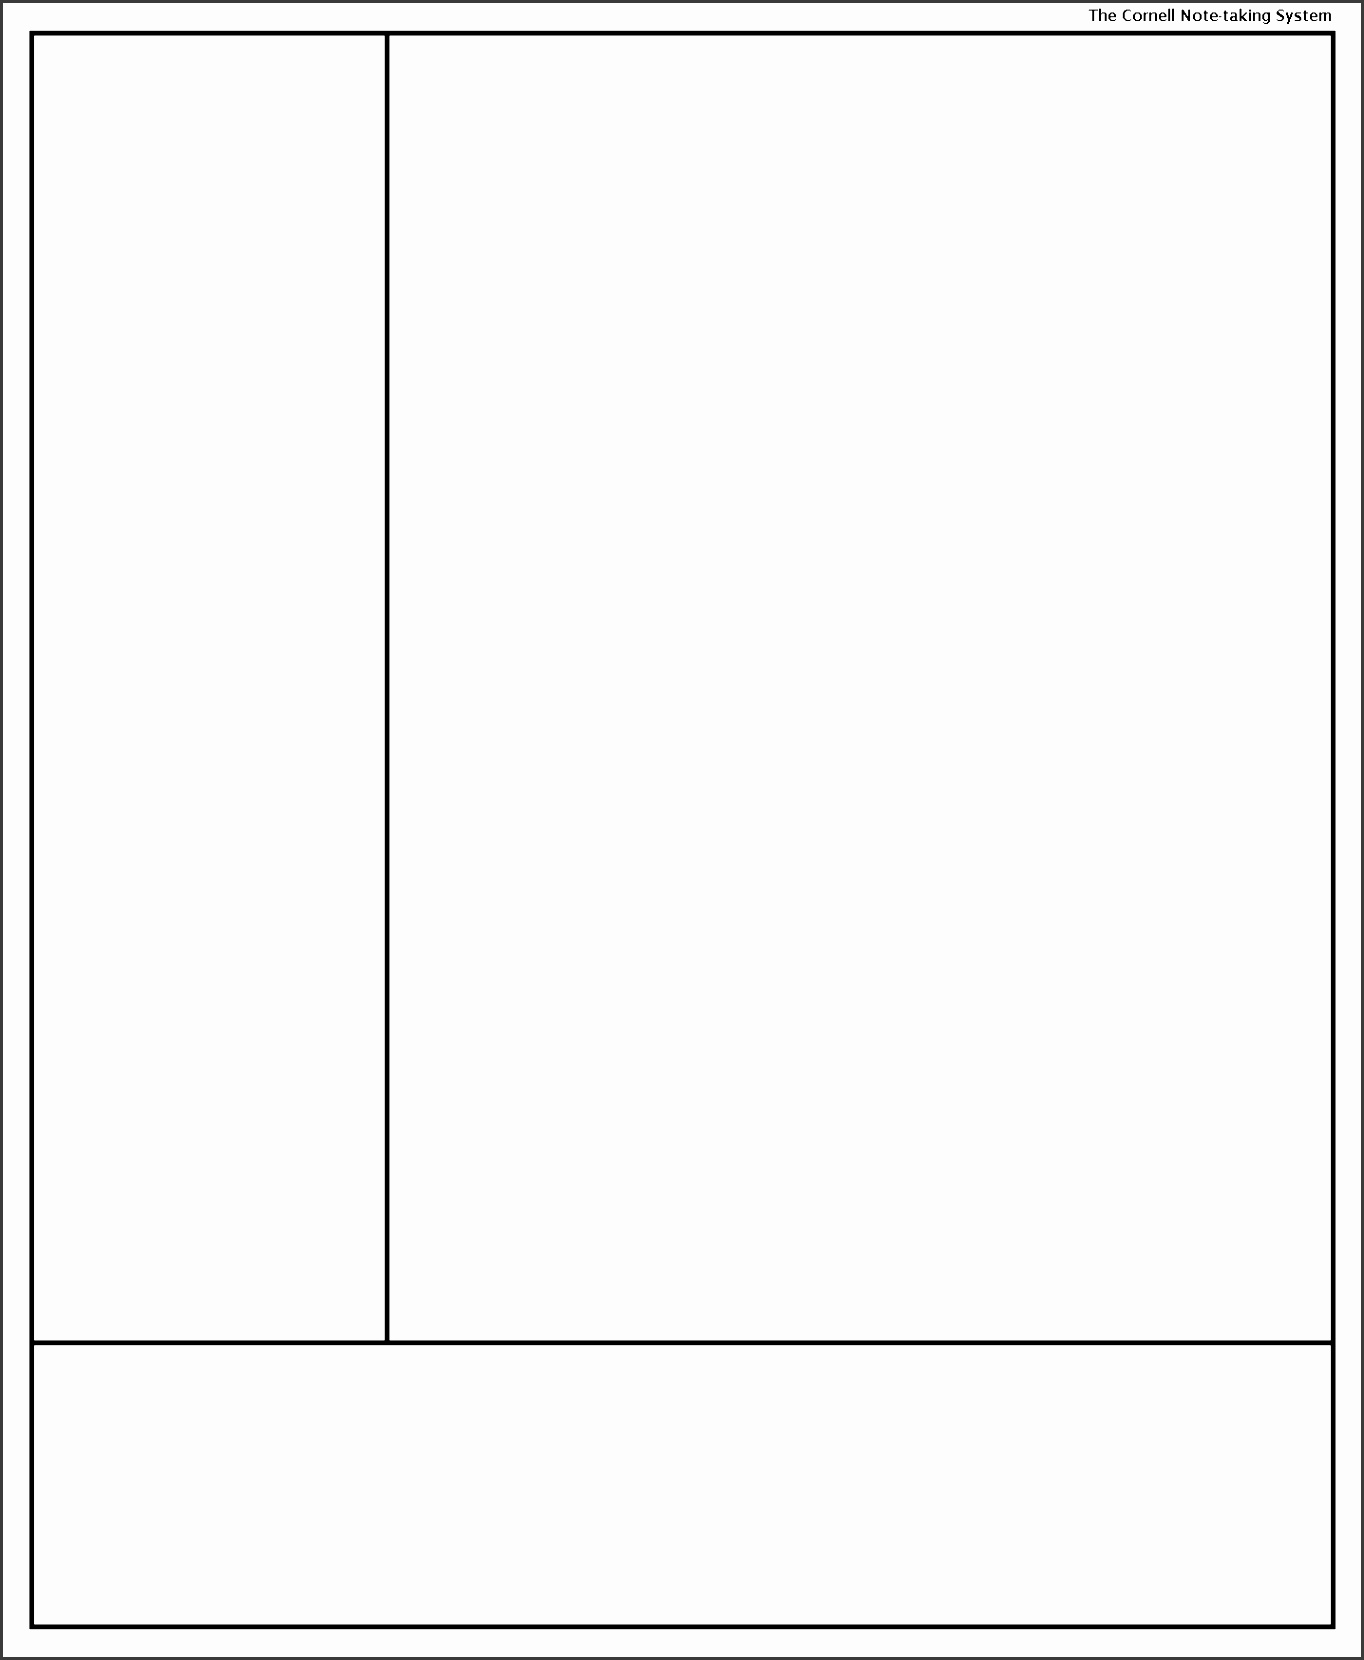 cornell note taking system template template for penultimate note template